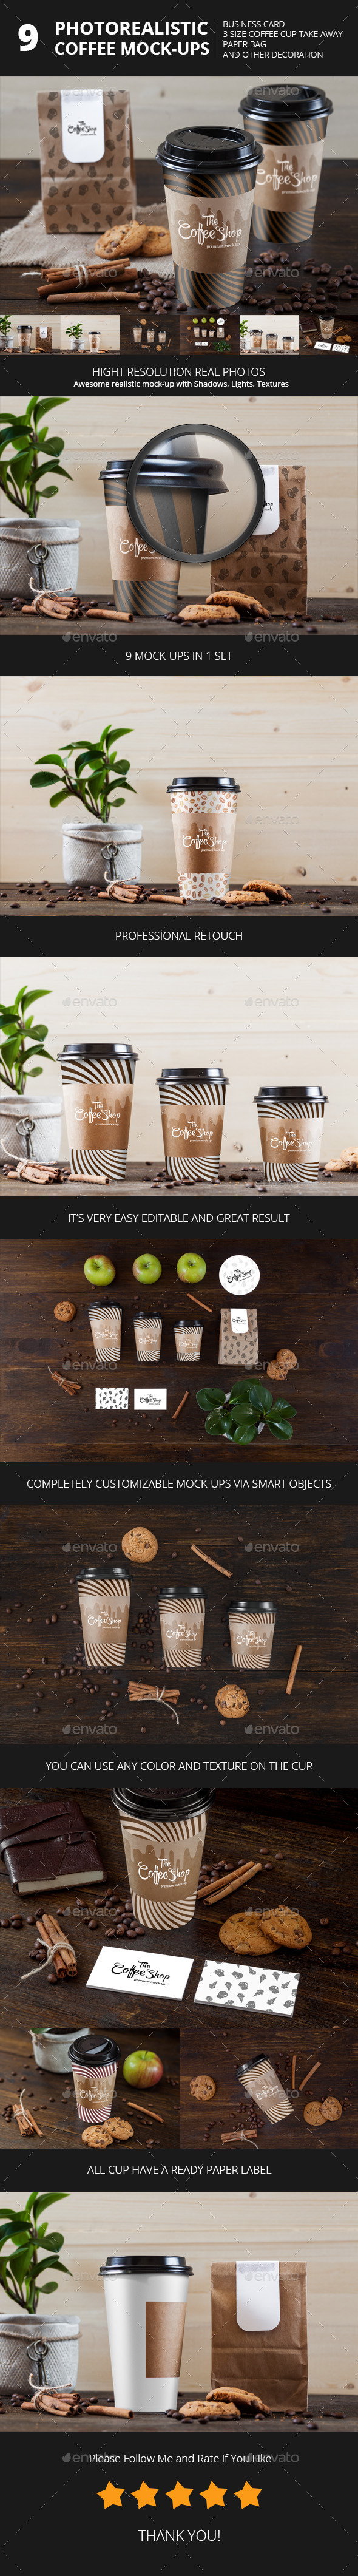 GraphicRiver Coffee cup branding mock-up s 10713731